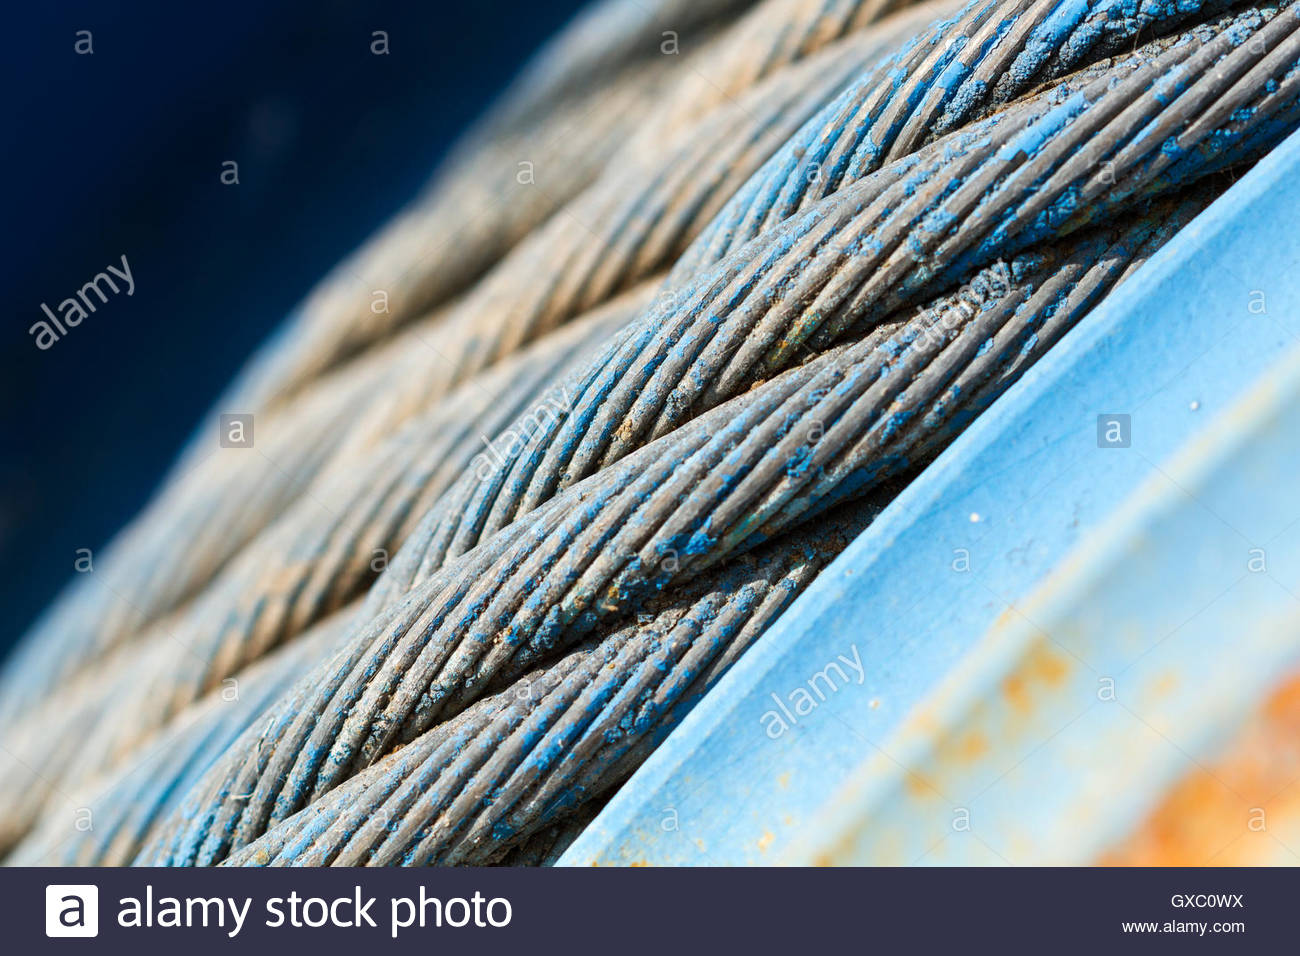 Wire Rope Stock Photos & Wire Rope Stock Images - Alamy